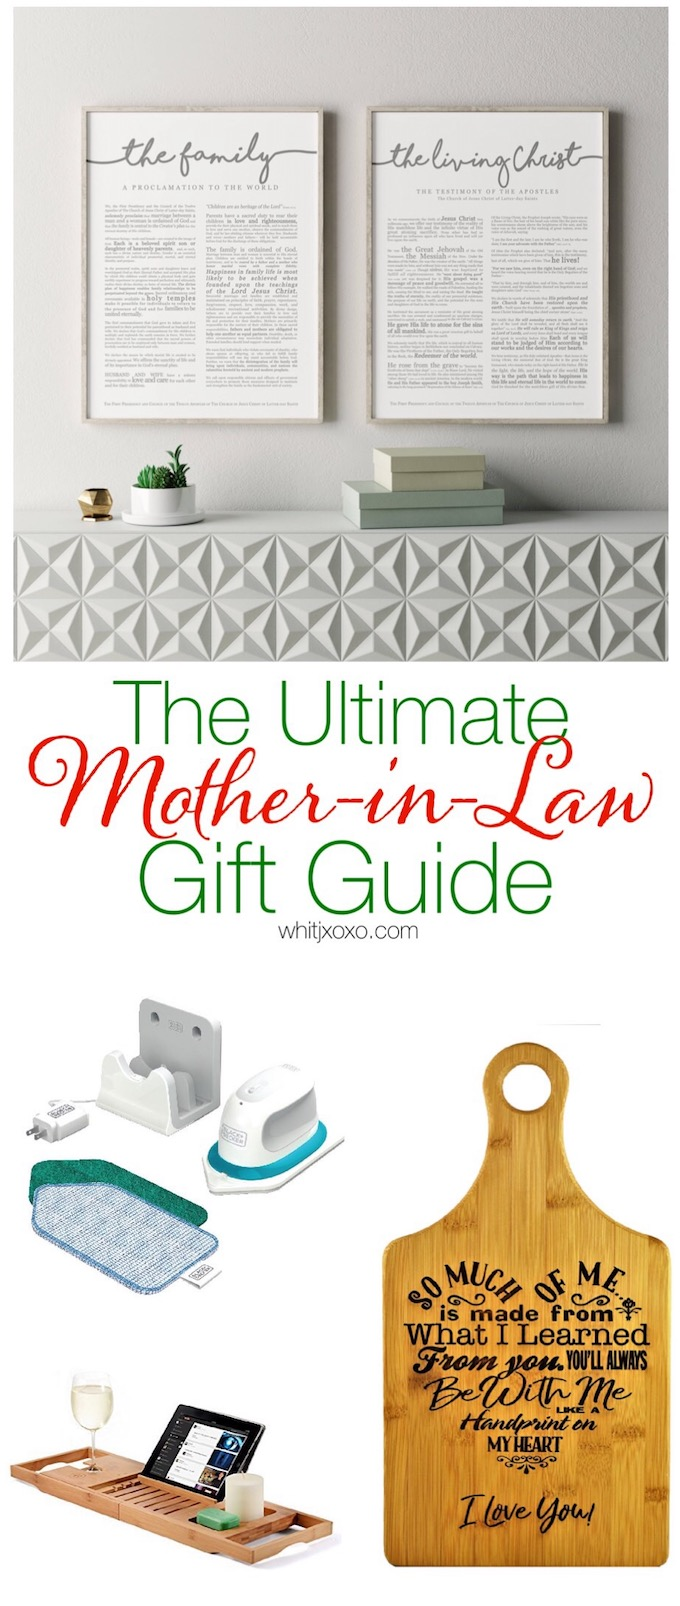 The Ultimate Mother-in-Law Gift Guide - Beauty, Baby, and a Budget